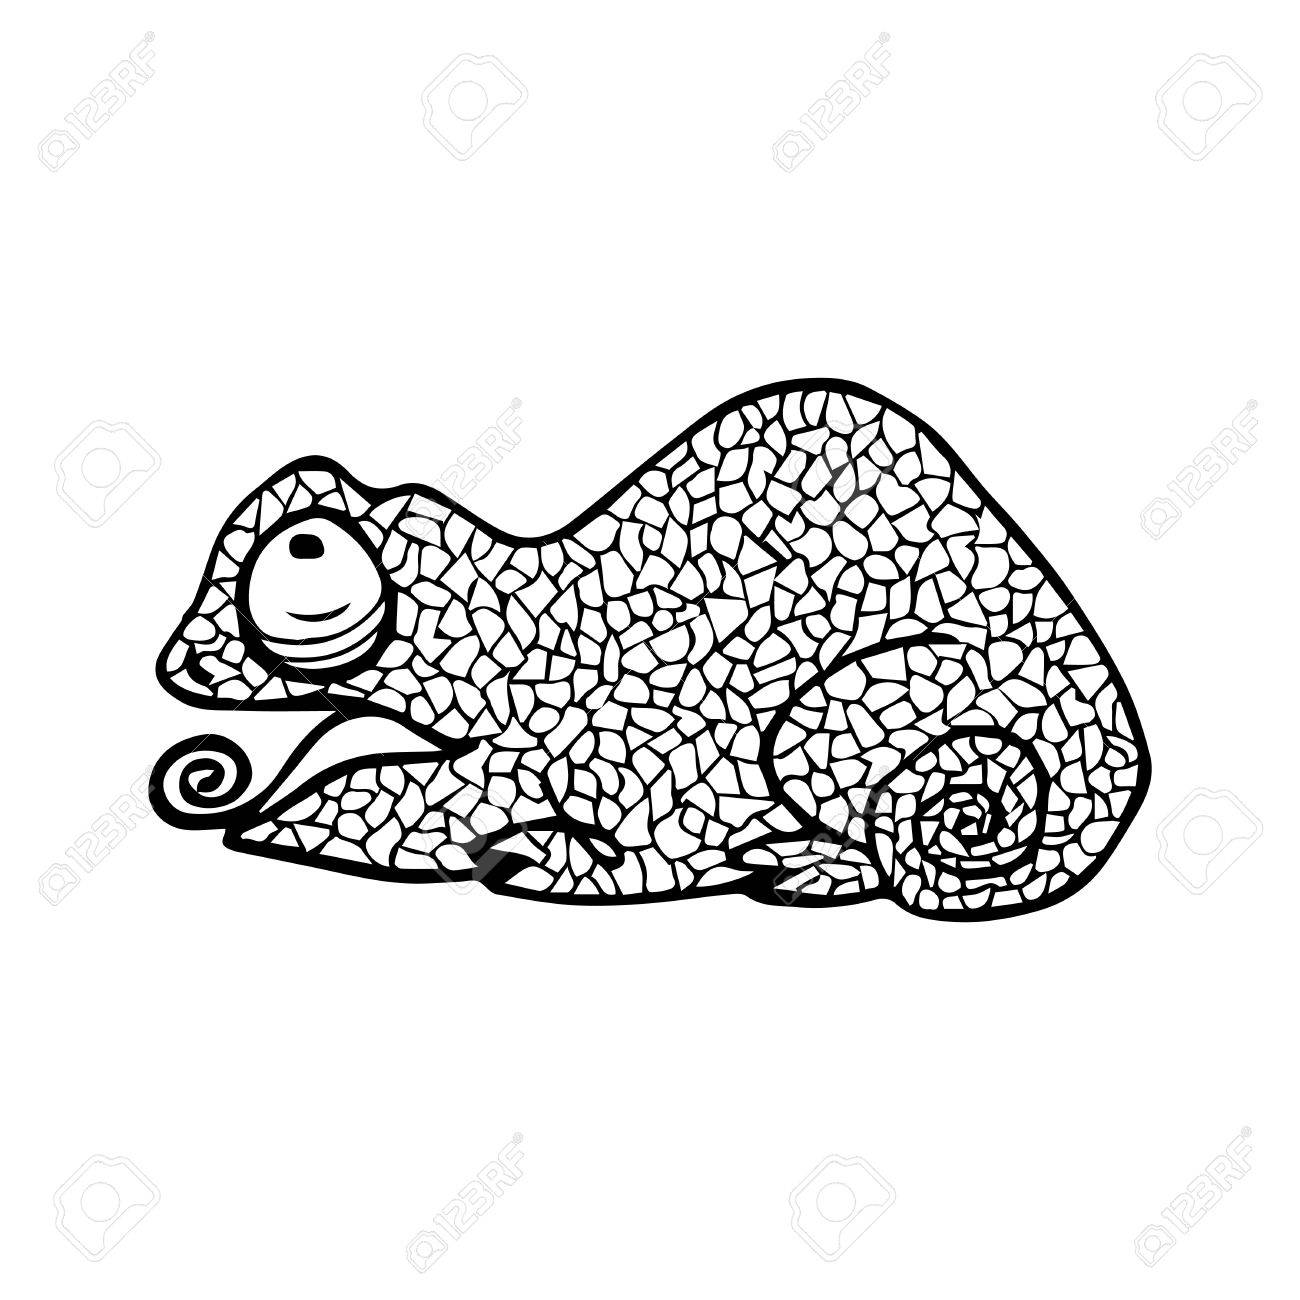 1300x1300 Vector Illustration Of Chameleon With Doodle Pattern. Coloring